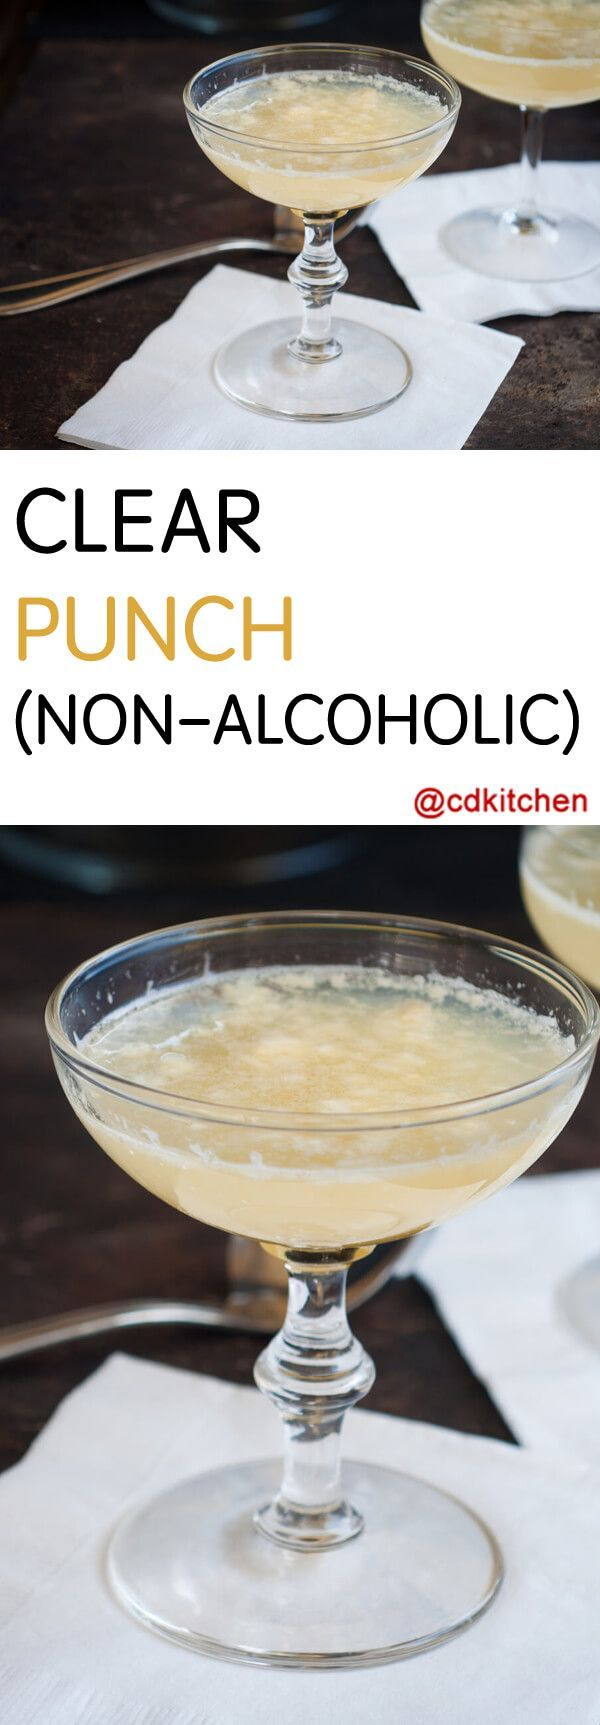 Clear Punch - Recipe is made with ginger ale, white grape juice, lemon-lime carbonated beverage | CDKitchen.com